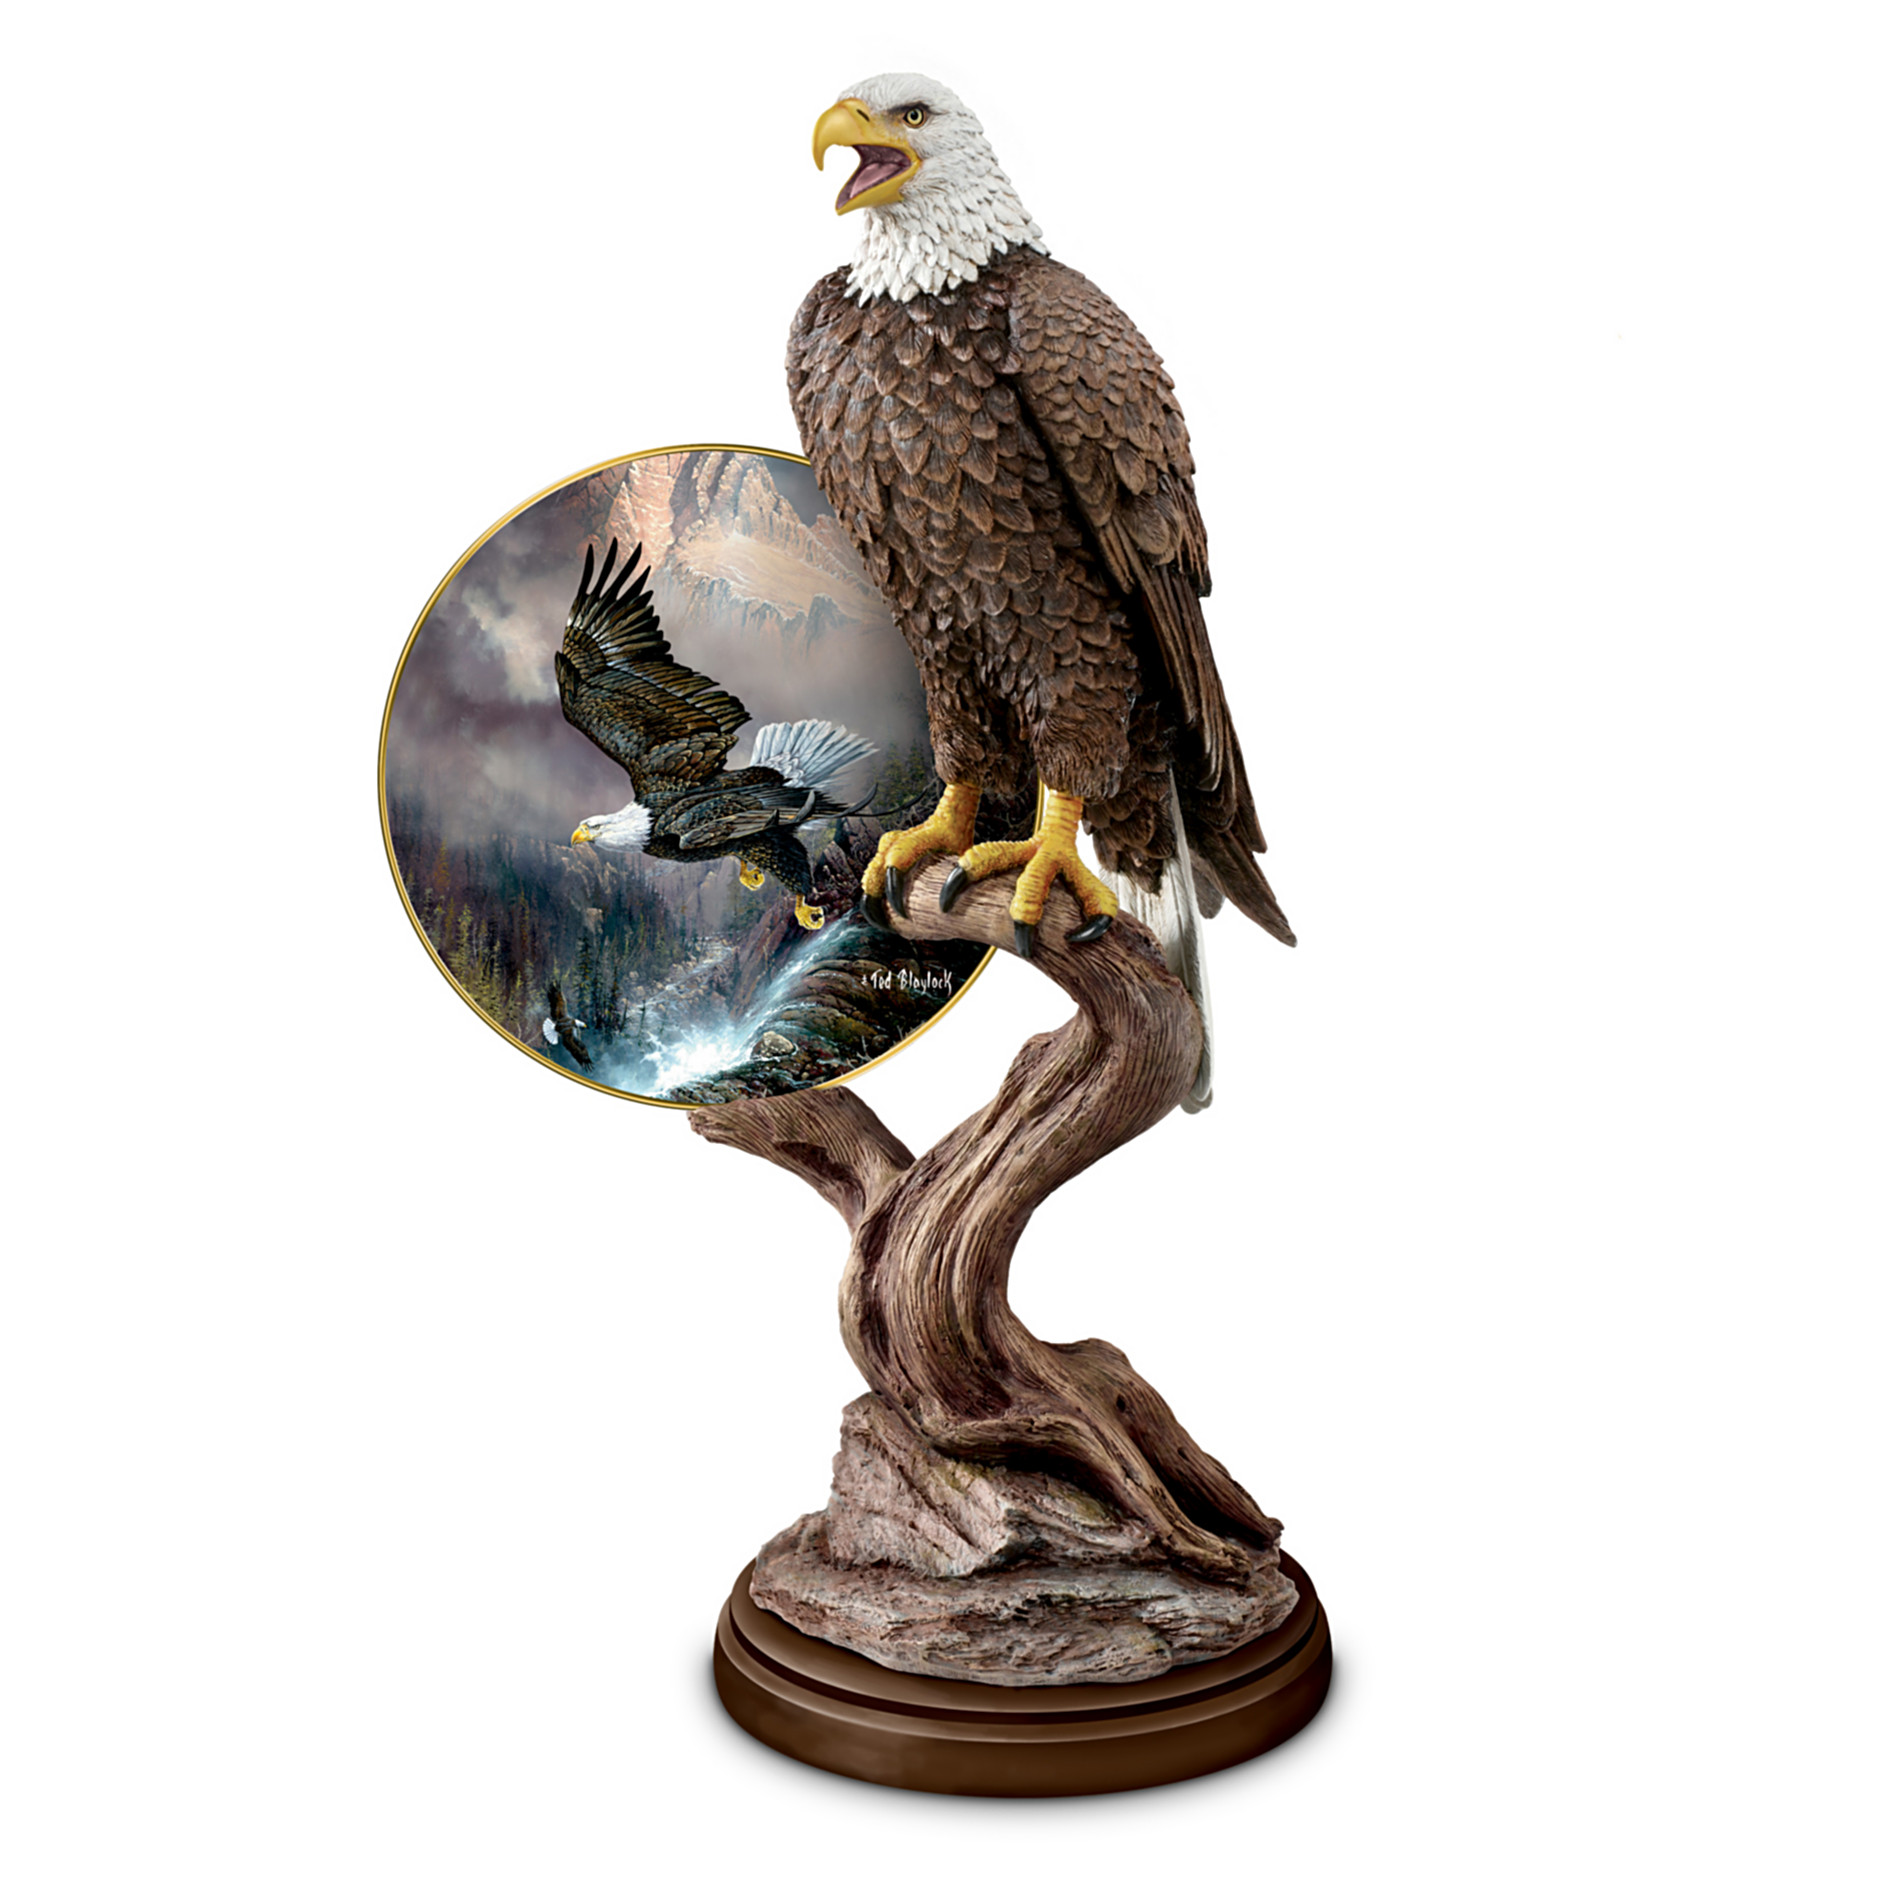 The Bradford Exchange Regal Guardian Artistic Bald Eagle Sculpture at Sears.com